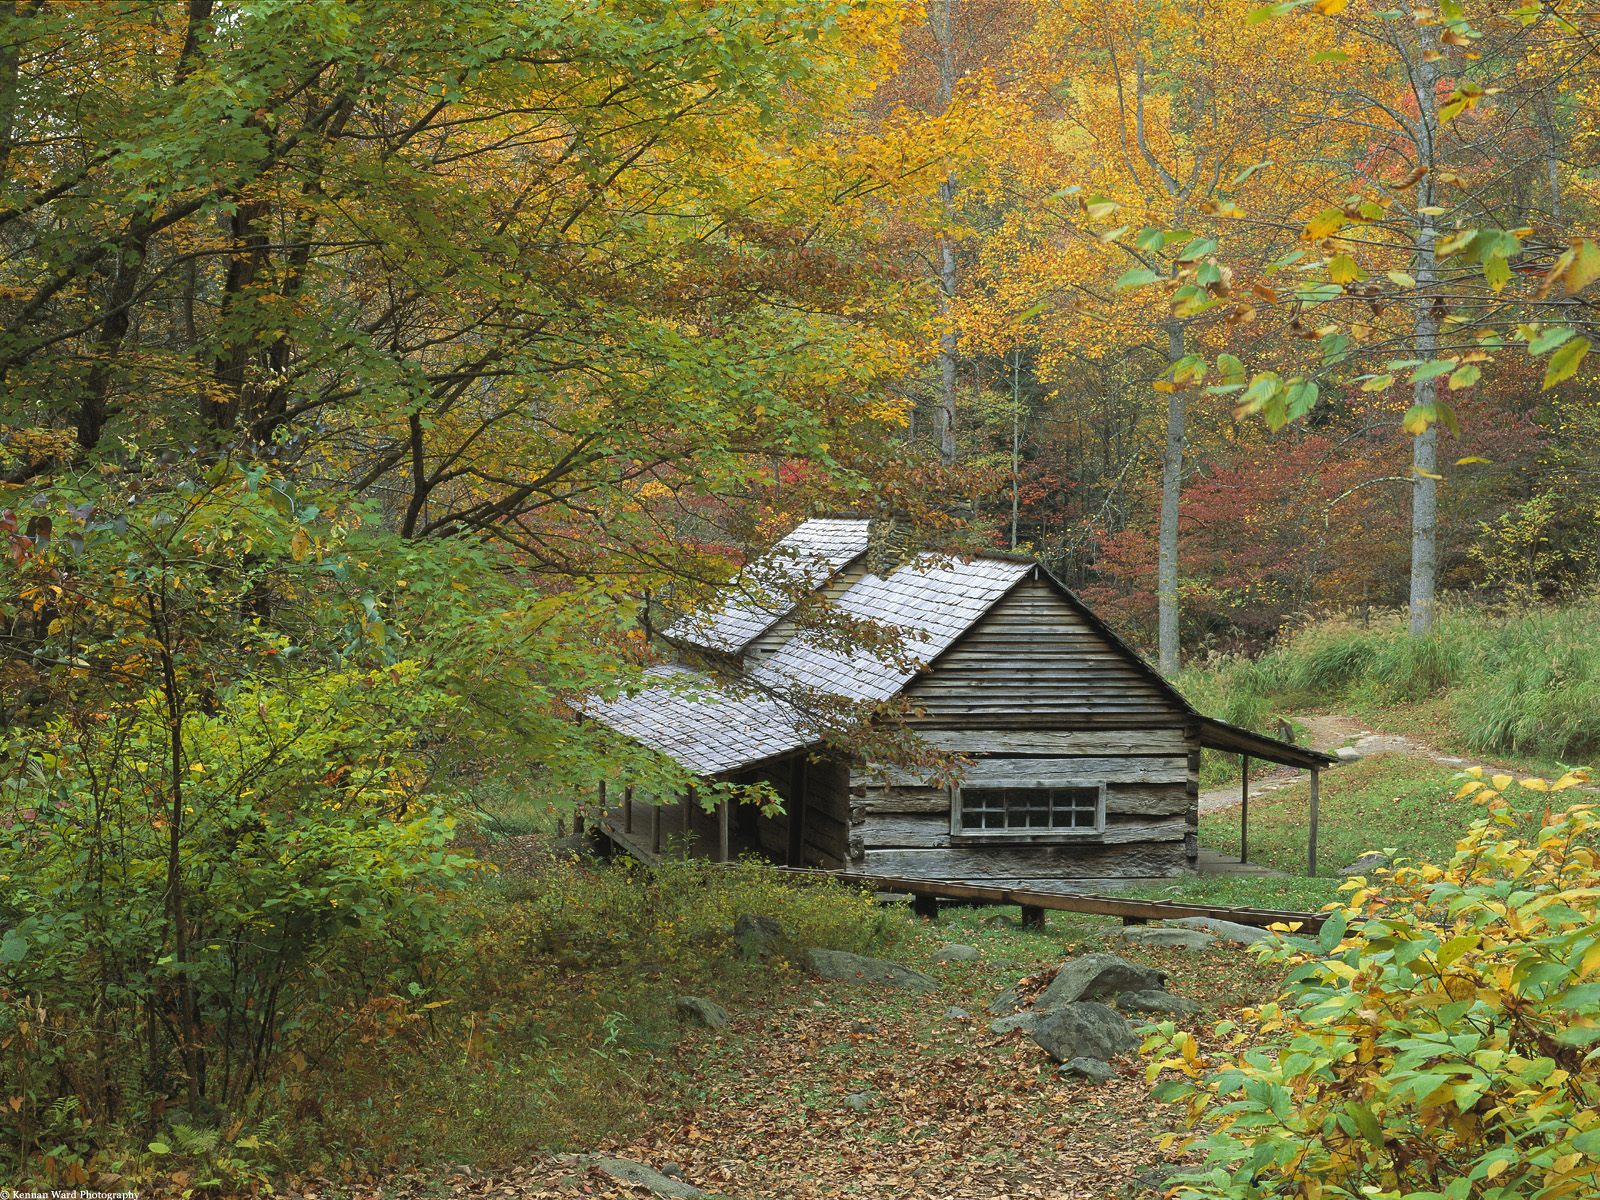 Park photo Homestead Cabin Smoky Mountains National Park wallpaper 1600x1200